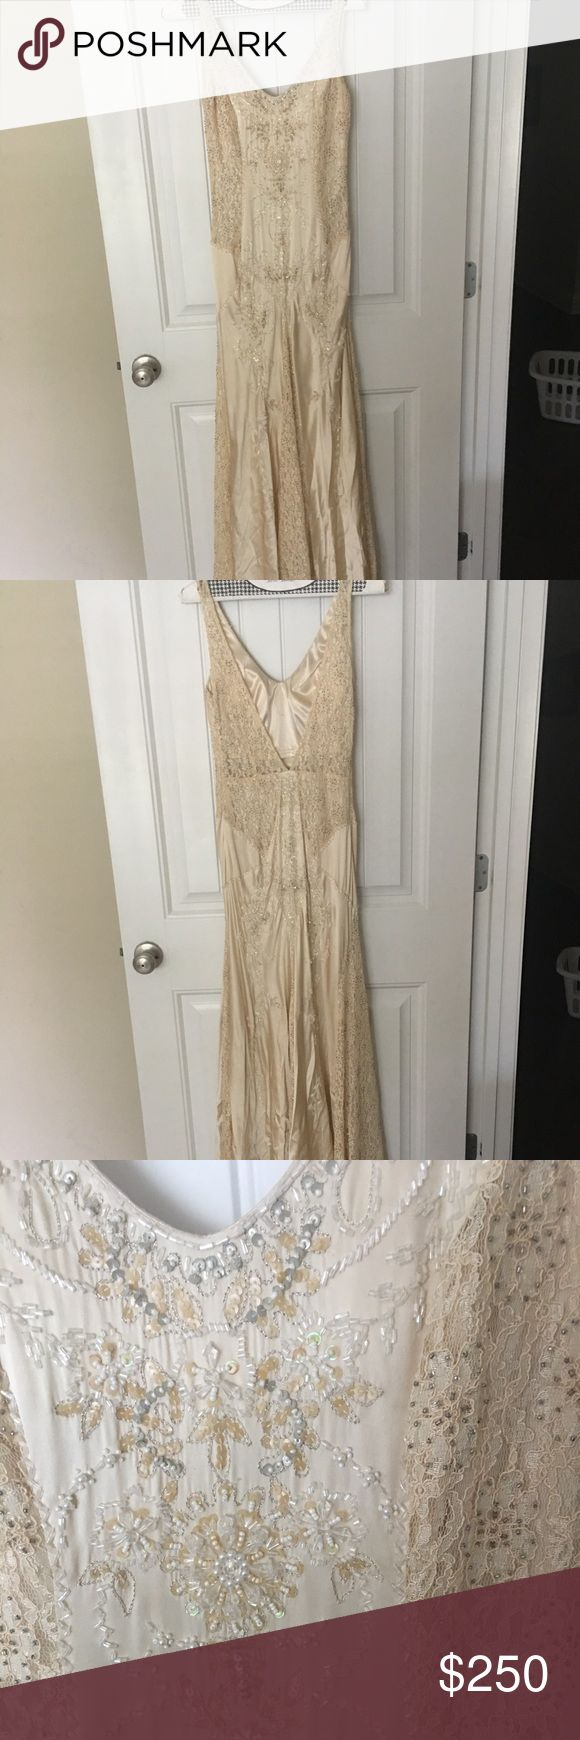 Sue Wong gown and silk wrap Gown is silk with lace and beading details, size 6. Never worn, tags still on, lace on very bottom shows a little wear. Comes with matching silk wrap. Sue Wong Dresses Wedding